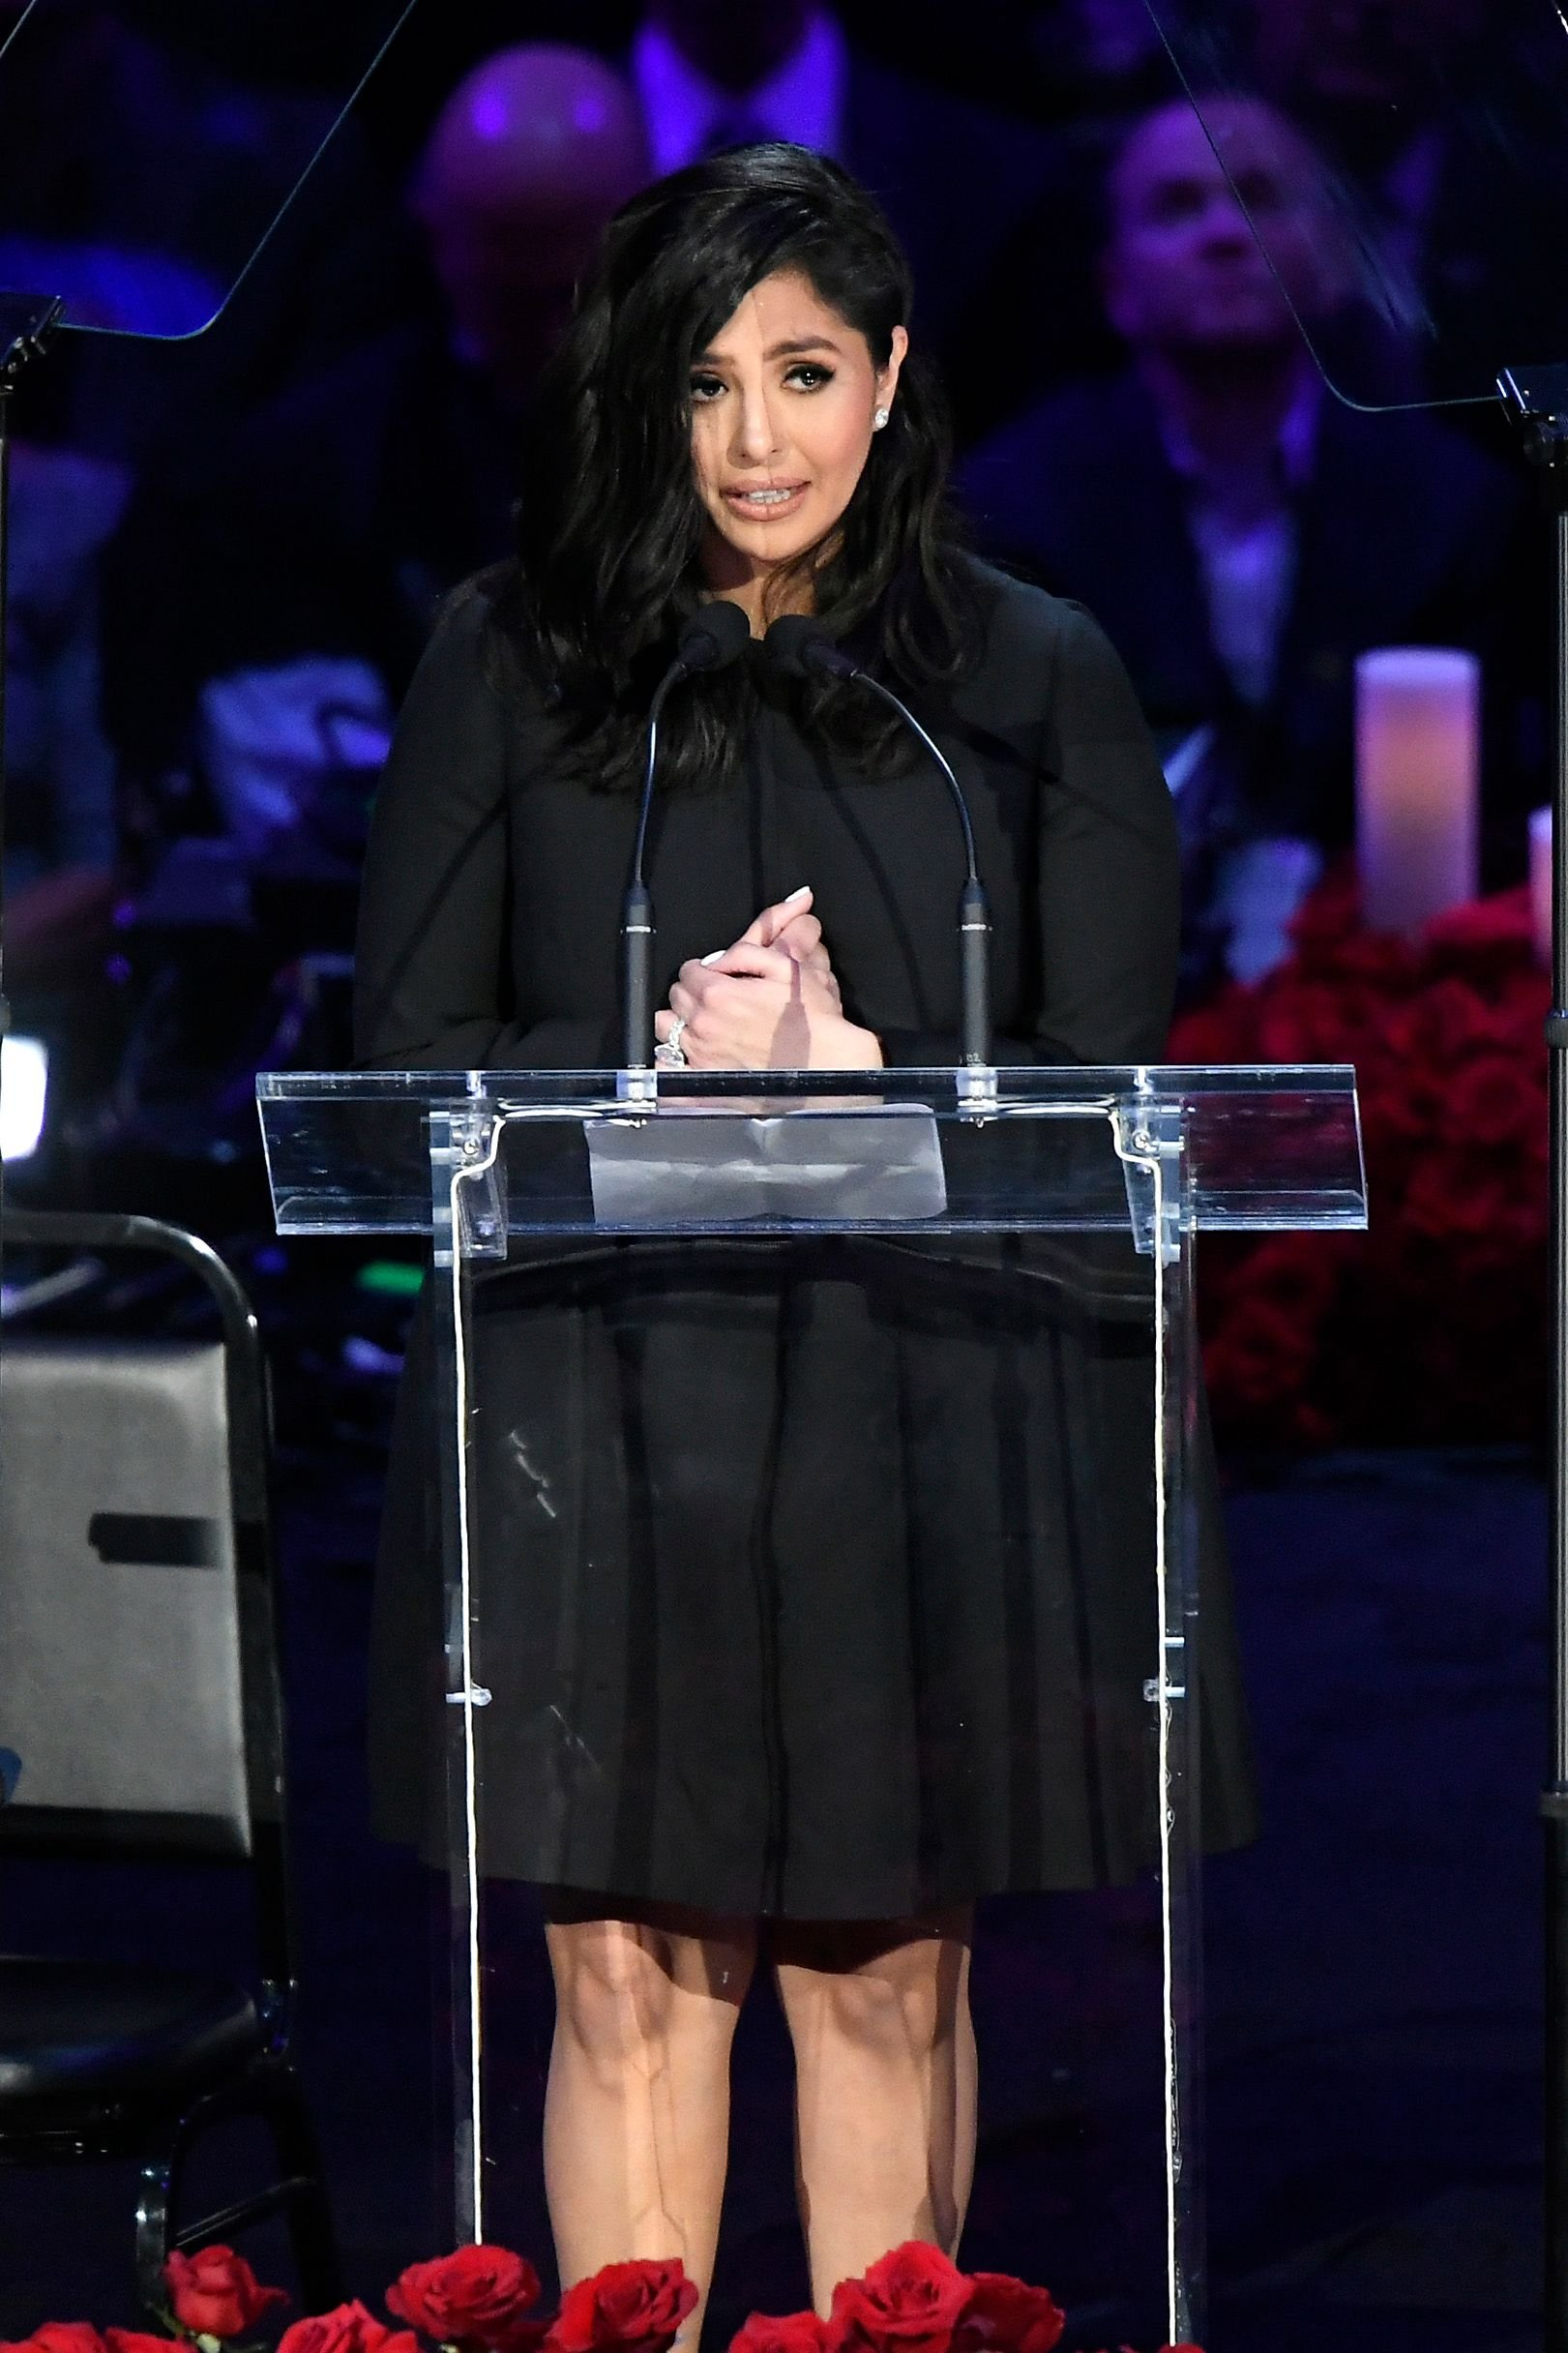 Vanessa Bryant at The Celebration of Life for Kobe & Gianna on February 24, 2020 in California. | Photo: Getty Images